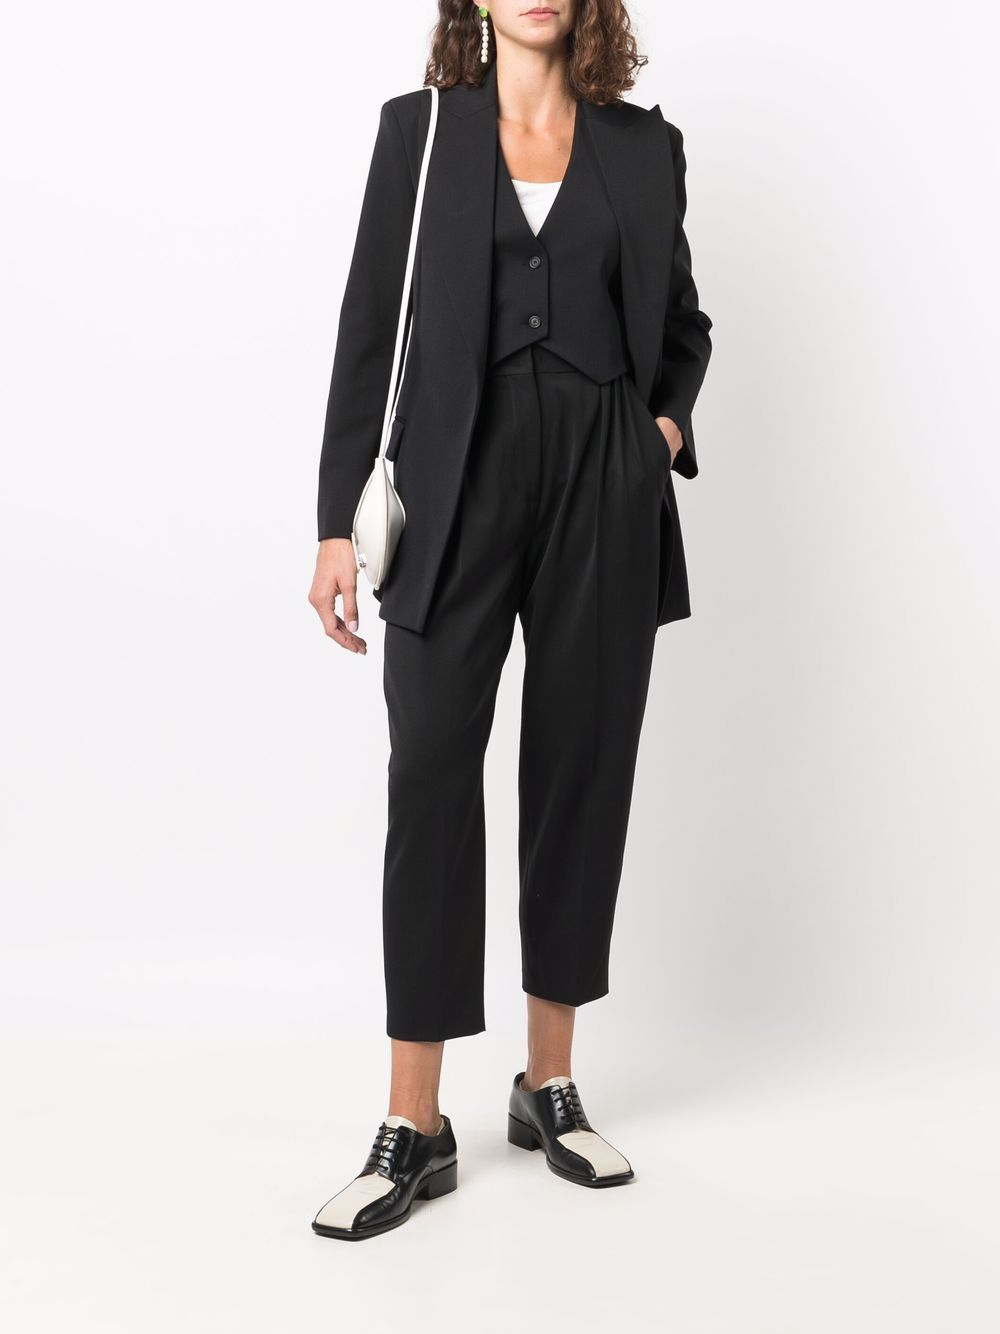 Picture of Erika Cavallini   Long-Length Single-Breasted Blazer